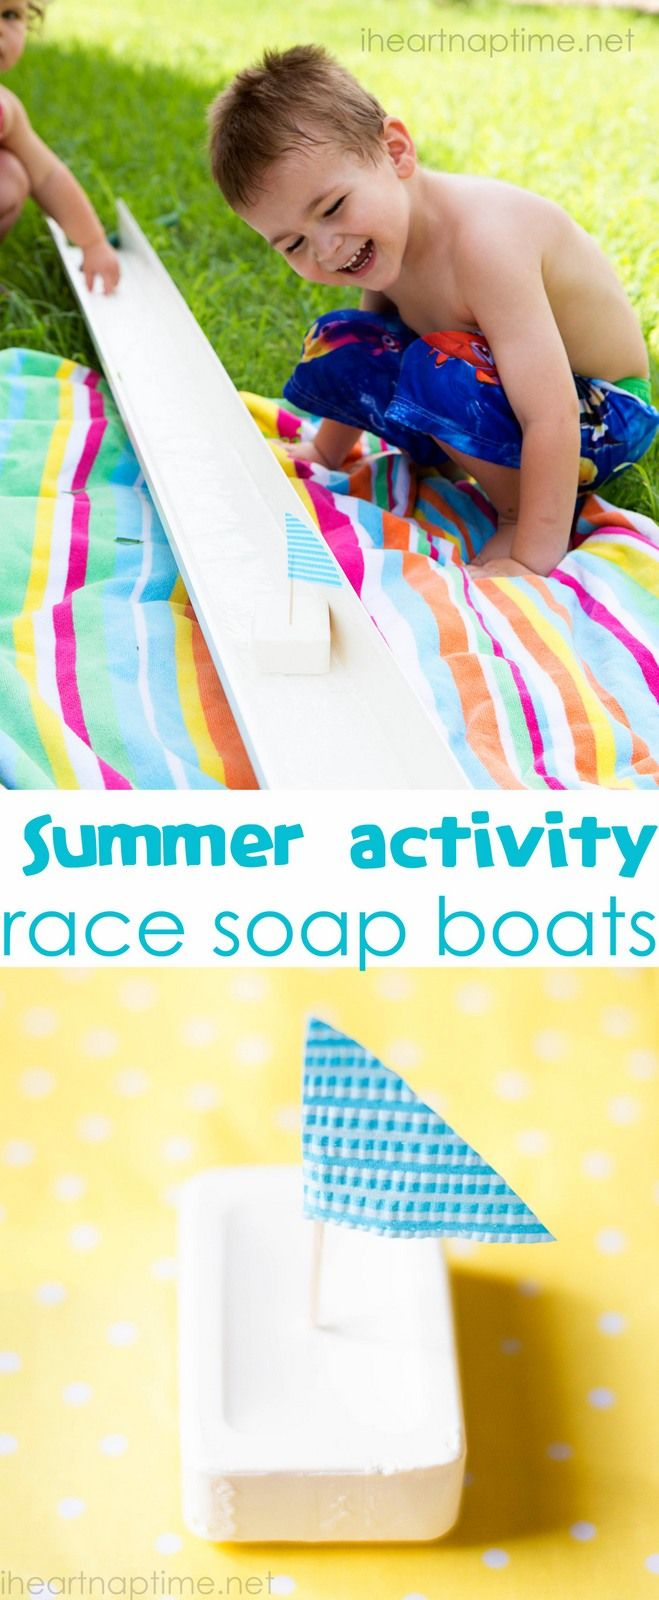 Make soap boats and race them with your kids for a fun activity to do this summer. #kids #summer